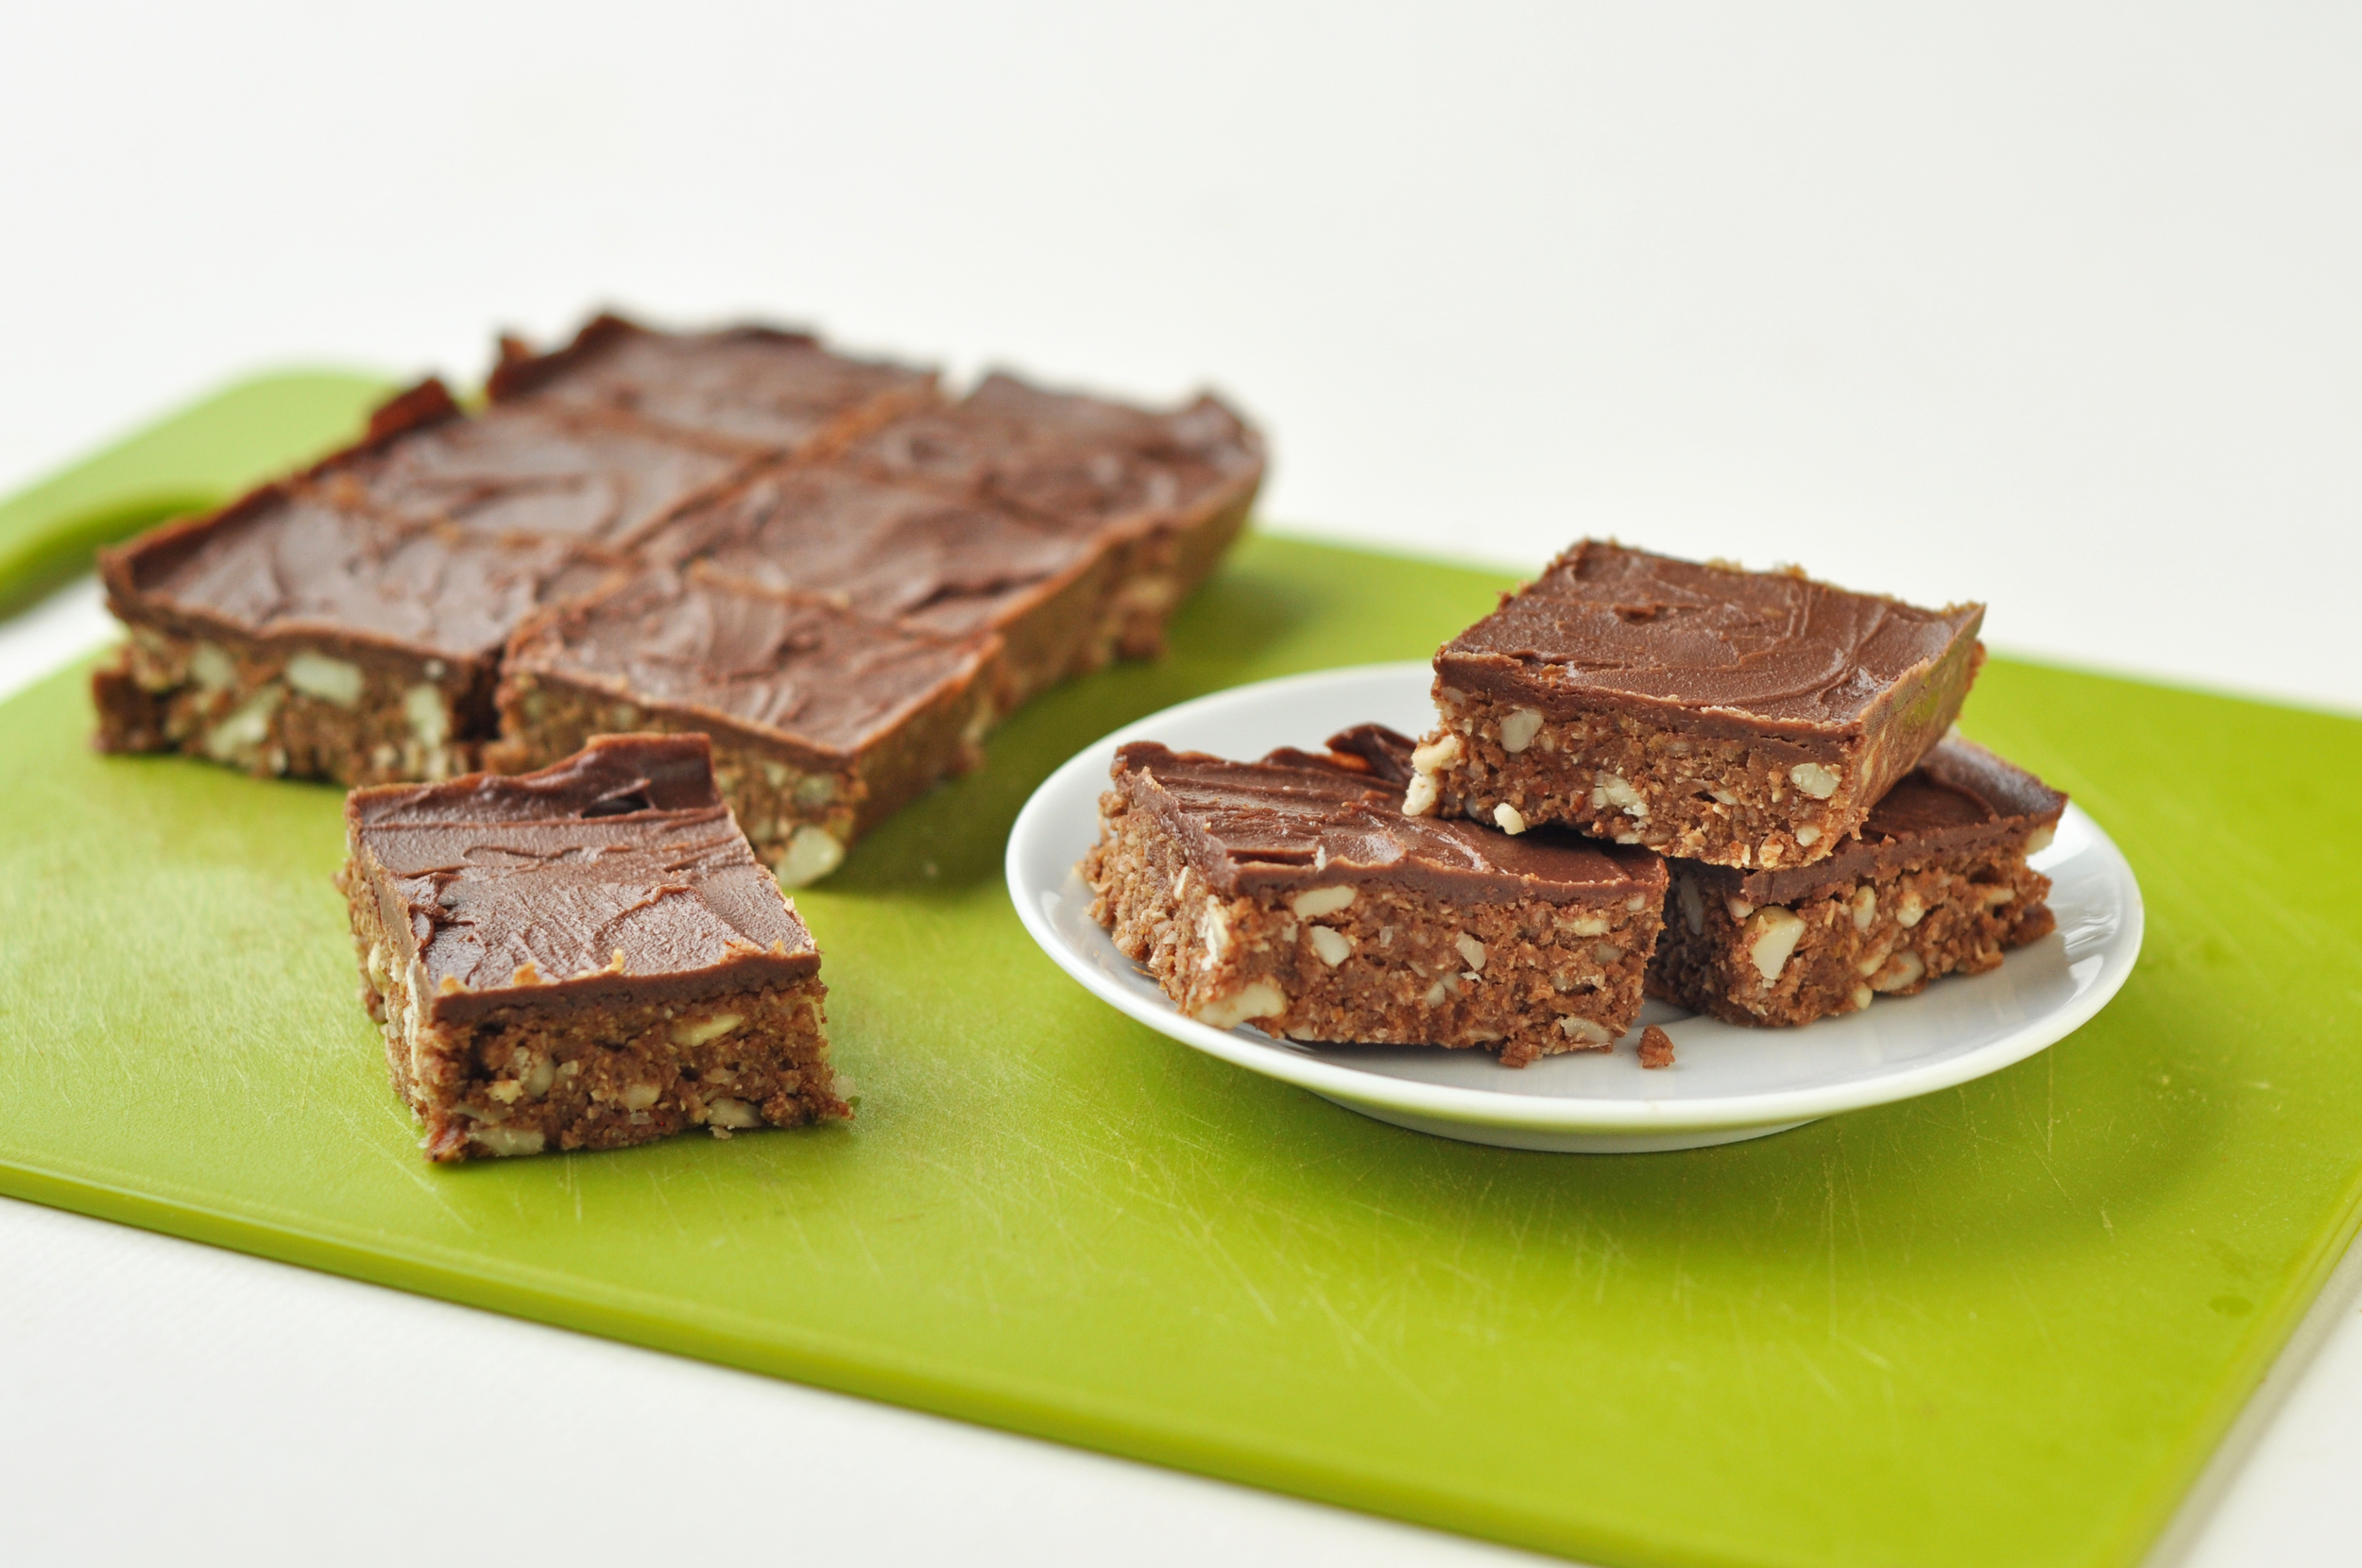 Simple and indulgent! You could also omit the chocolate layer and cocoa to make   a more regular raw style flapjack